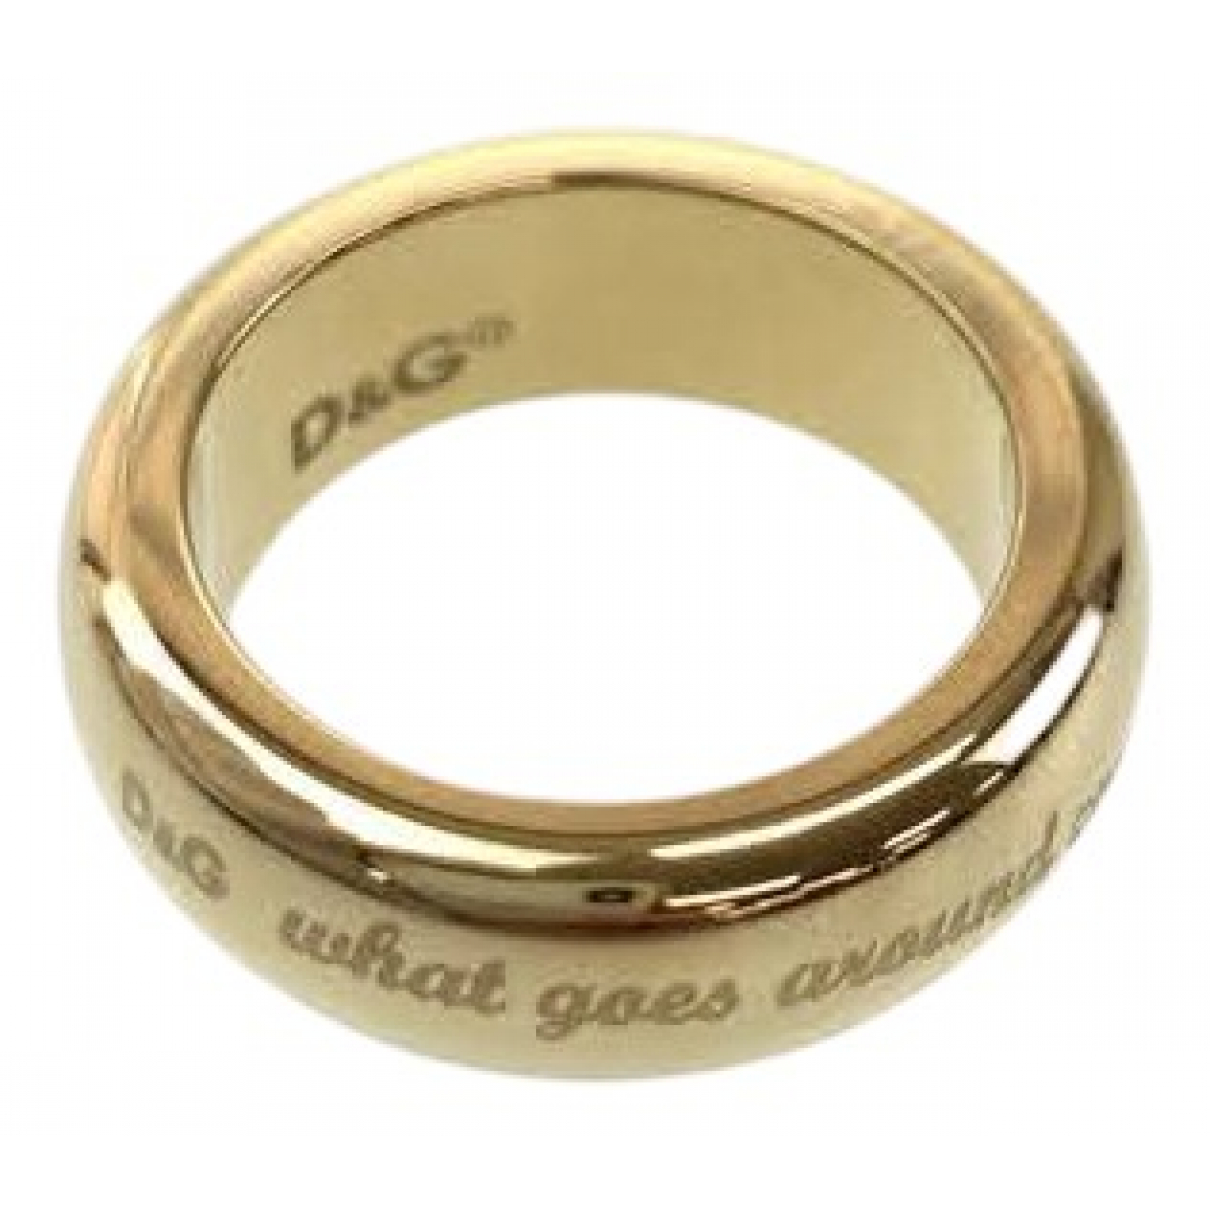 D&g \N Ring in  Gold Metall